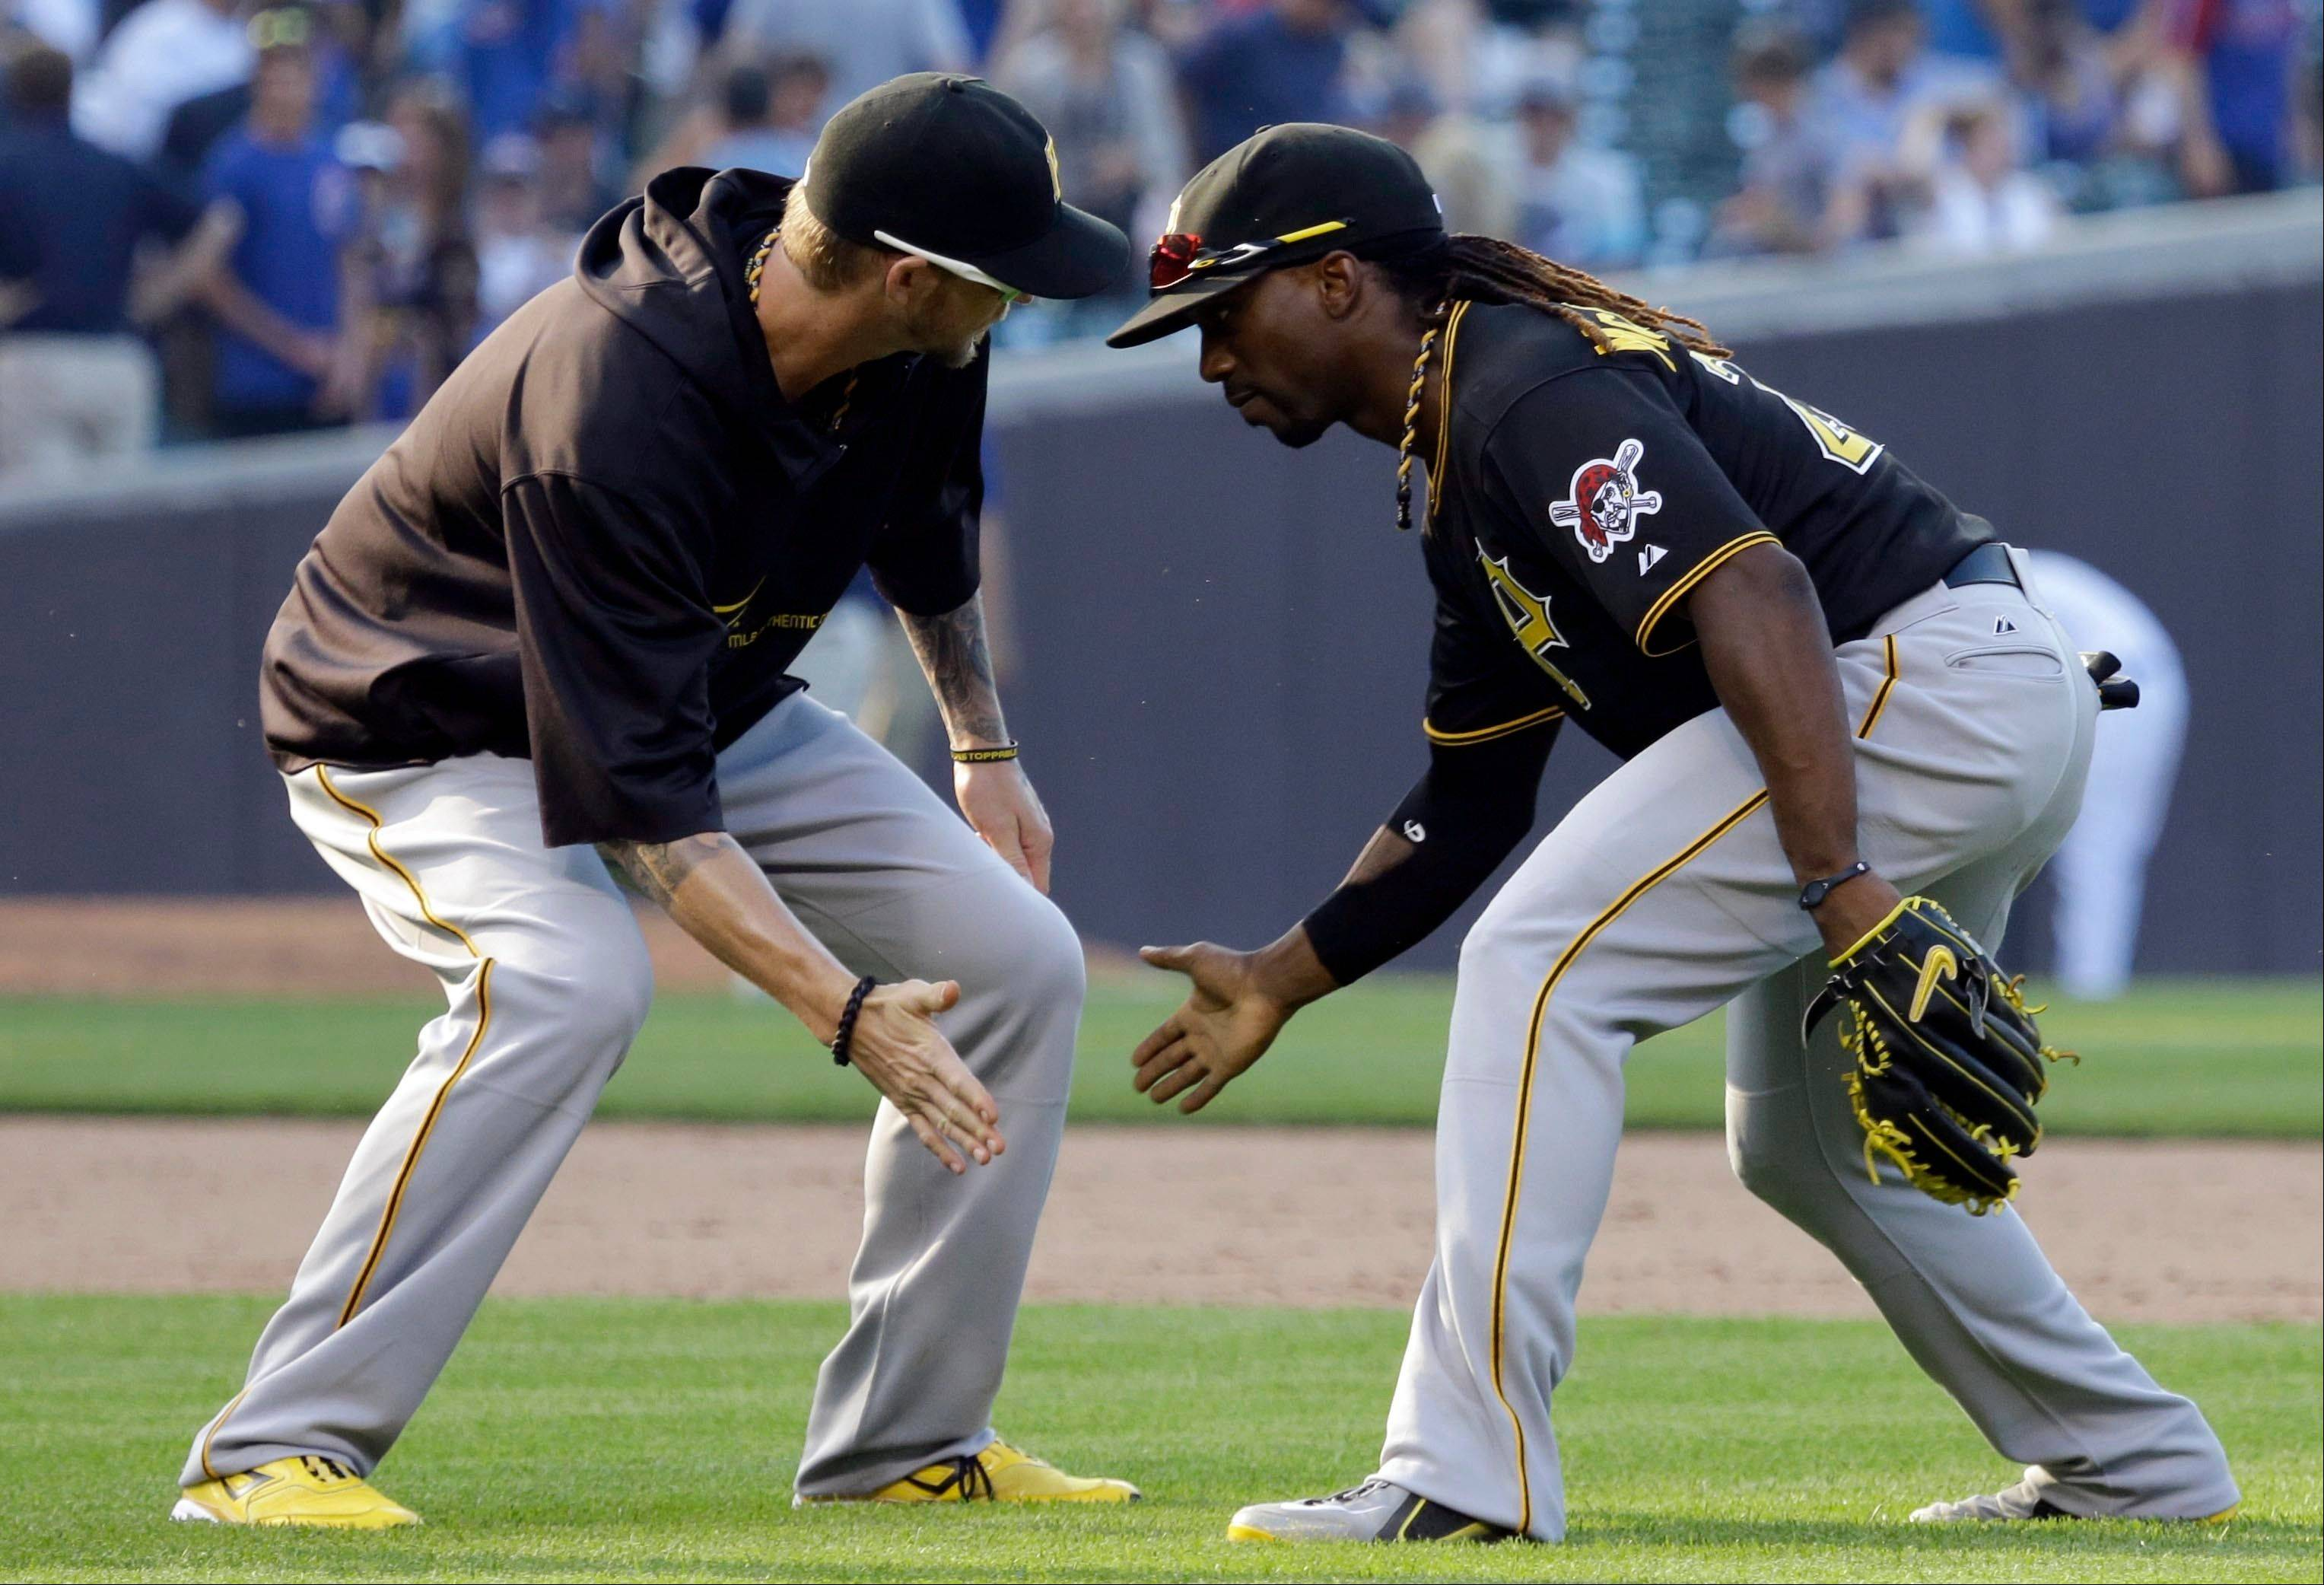 Pirates show Cubs how it's done